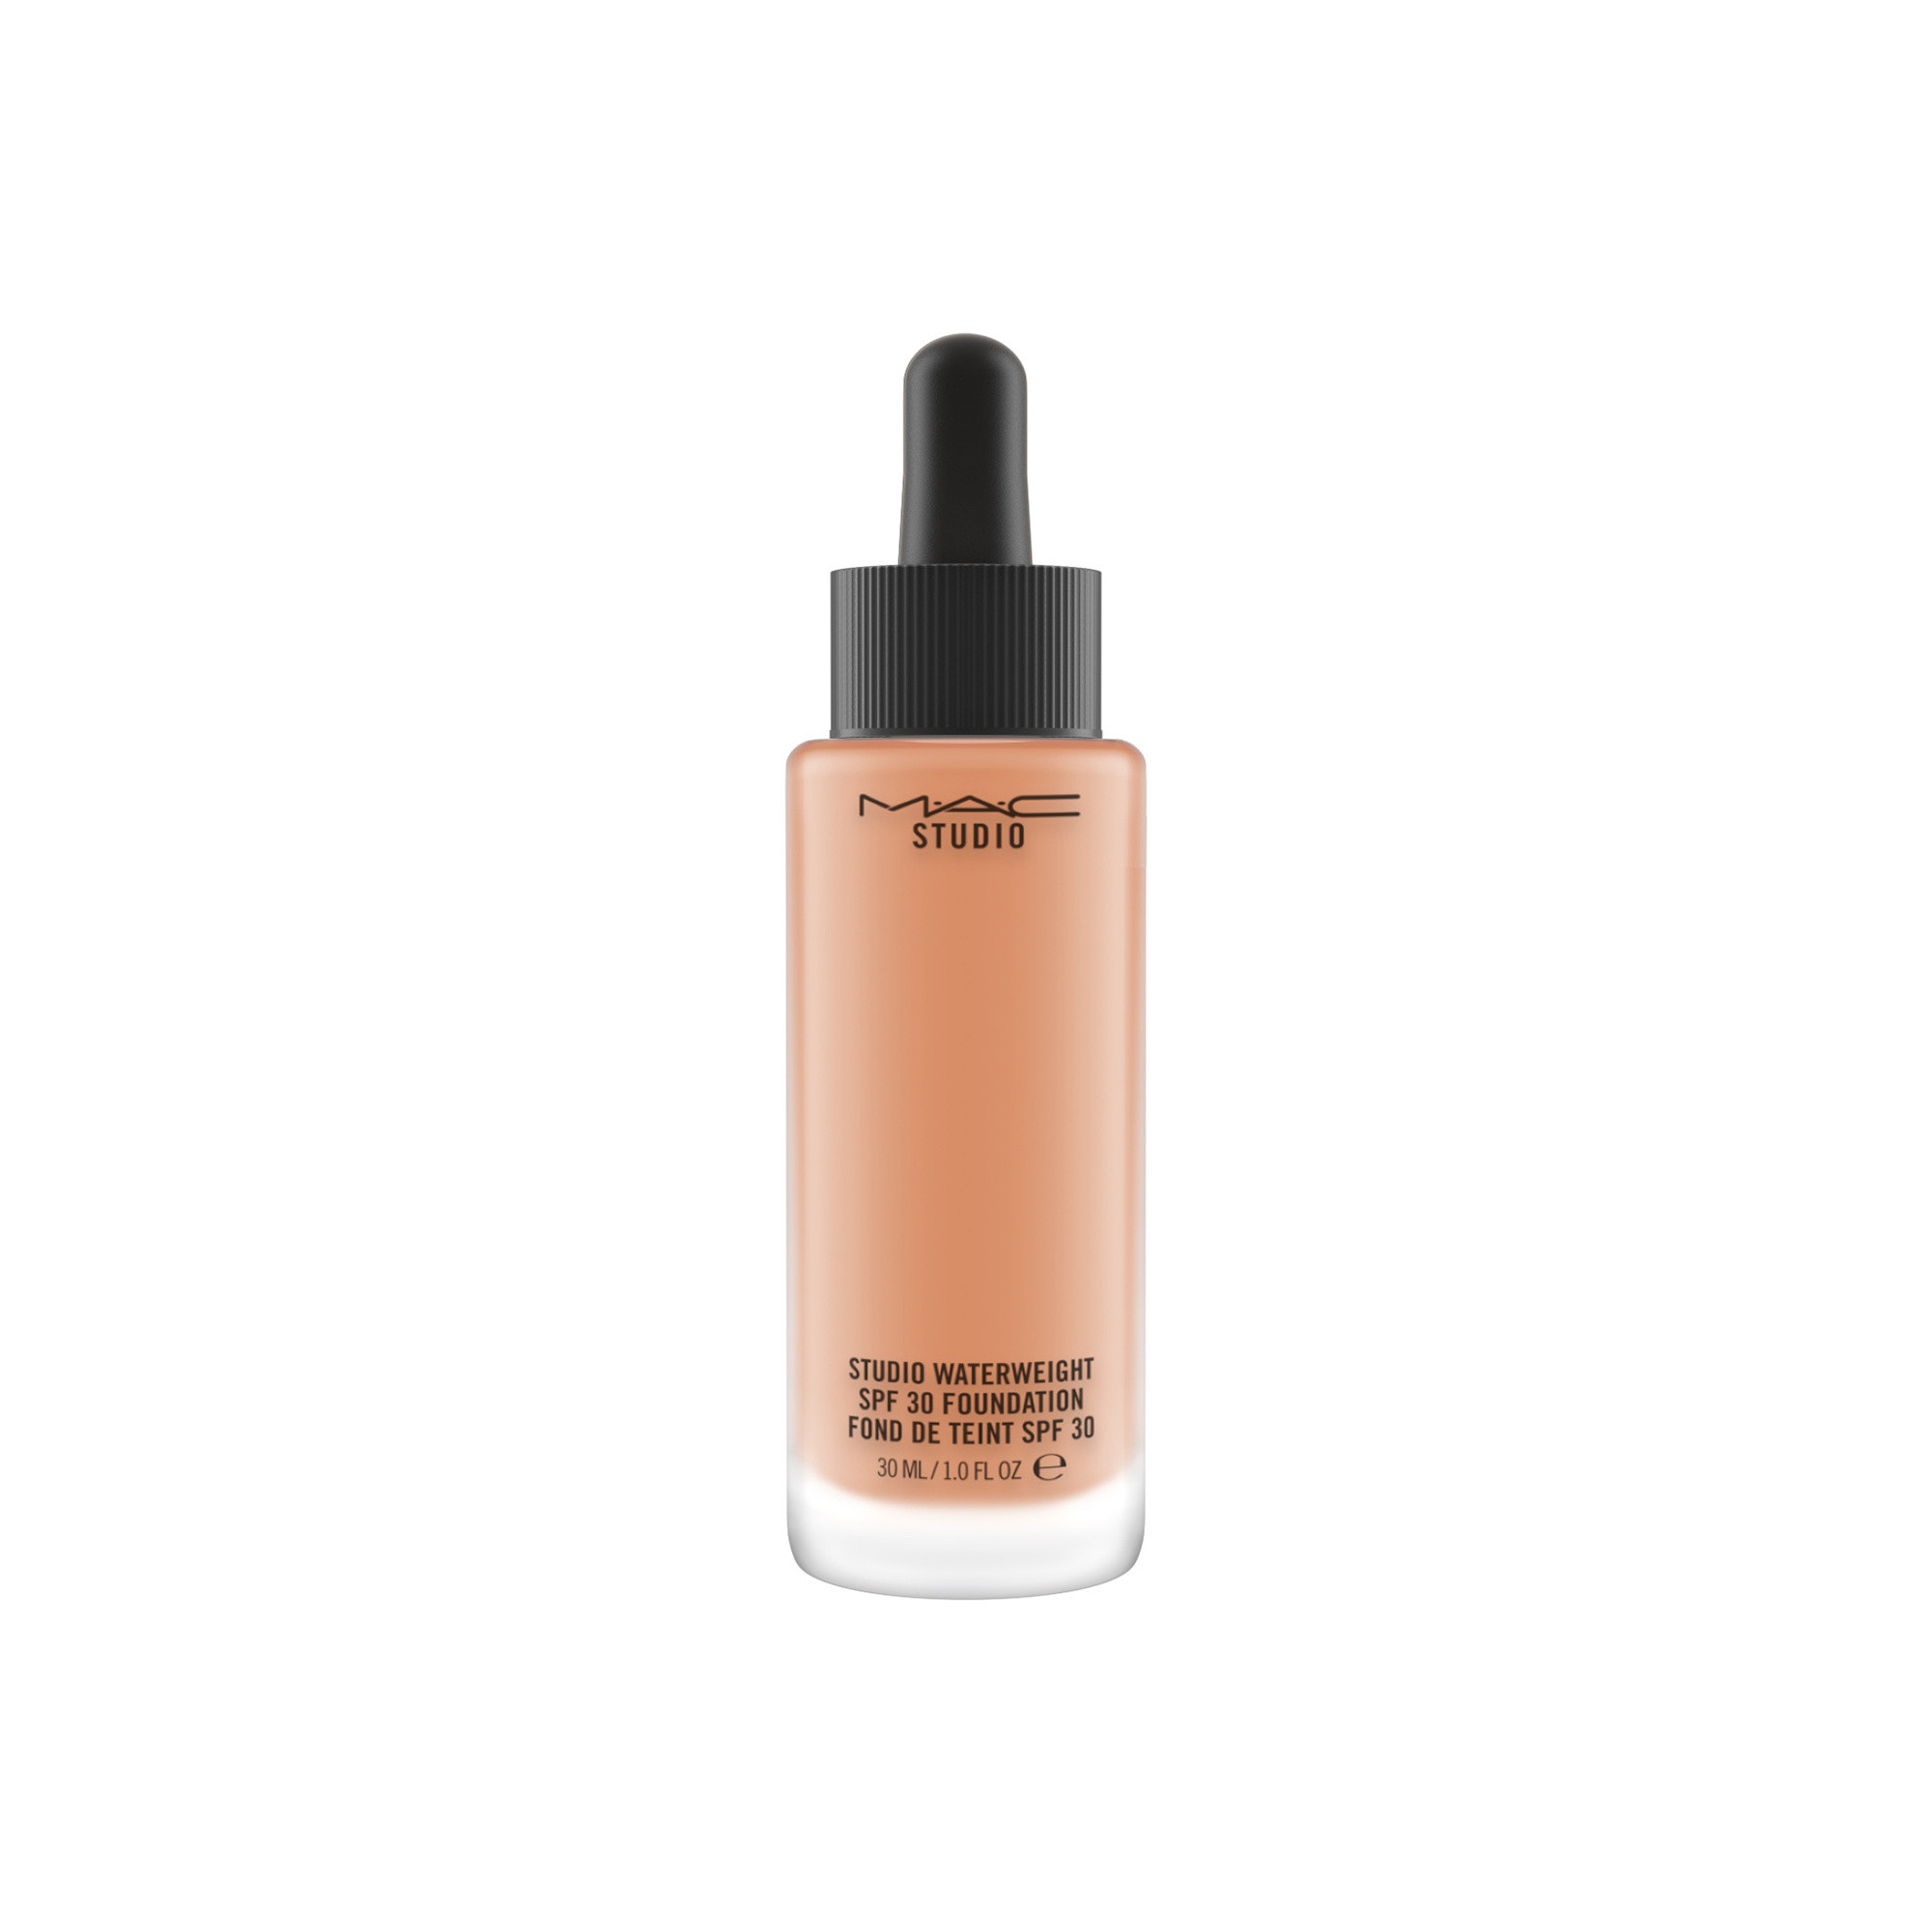 Studio Waterweight Foundation Spf30 - NW35, NW35, large image number 1